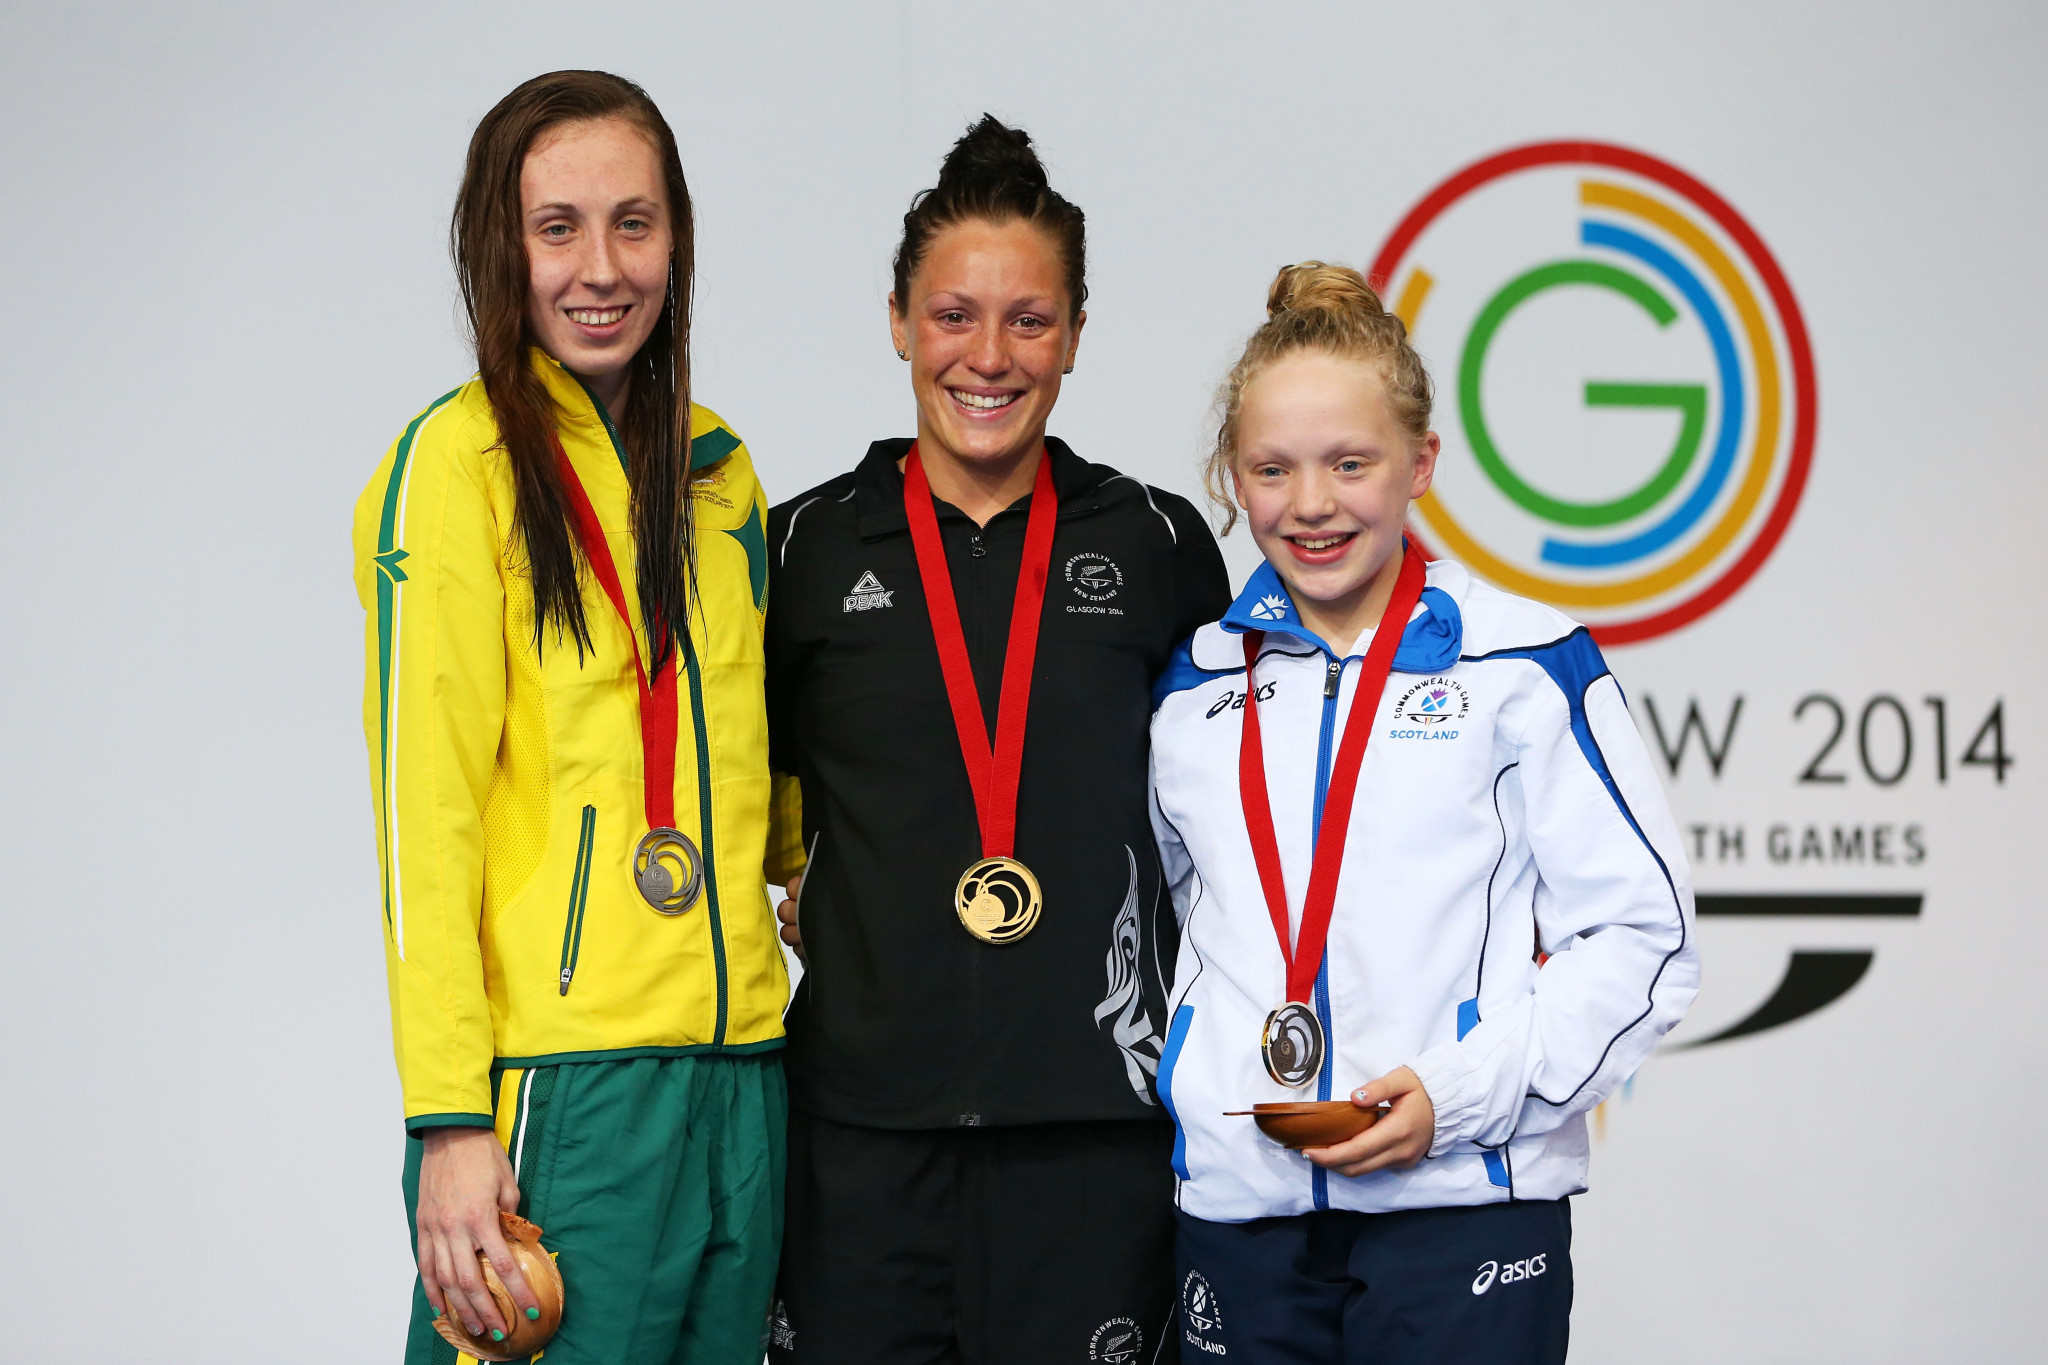 Gold medallist Sophie Pascoe of New Zealand poses with silver medallist Madeleine Scott of Australia and bronze medallist Erraid Davies of Scotland during the medal ceremony for the Women's 100m Breaststroke SB9 Final at Tollcross International Swimming Centre ©Getty Images